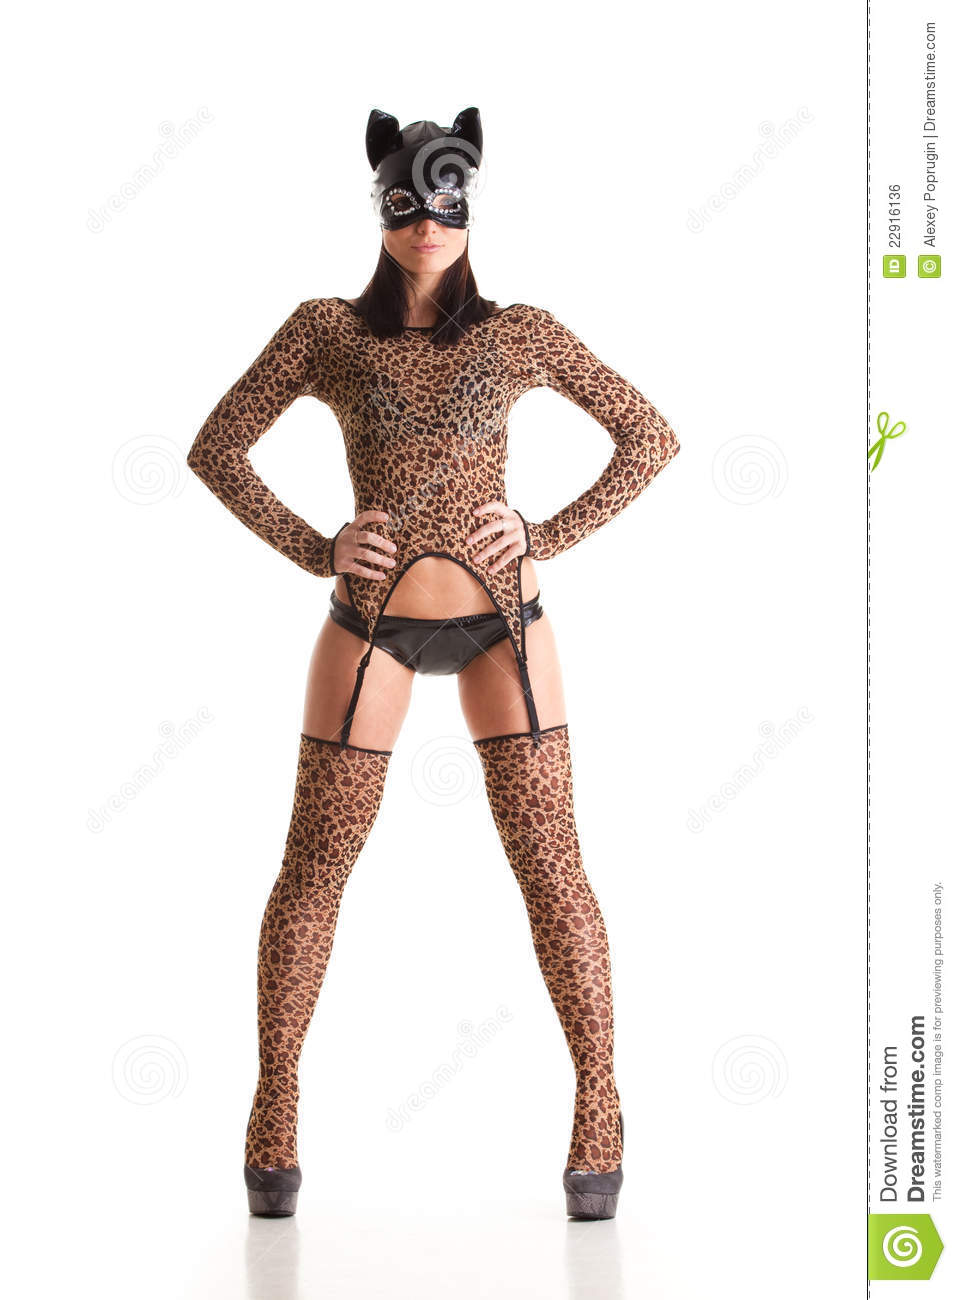 Catwoman seksowny